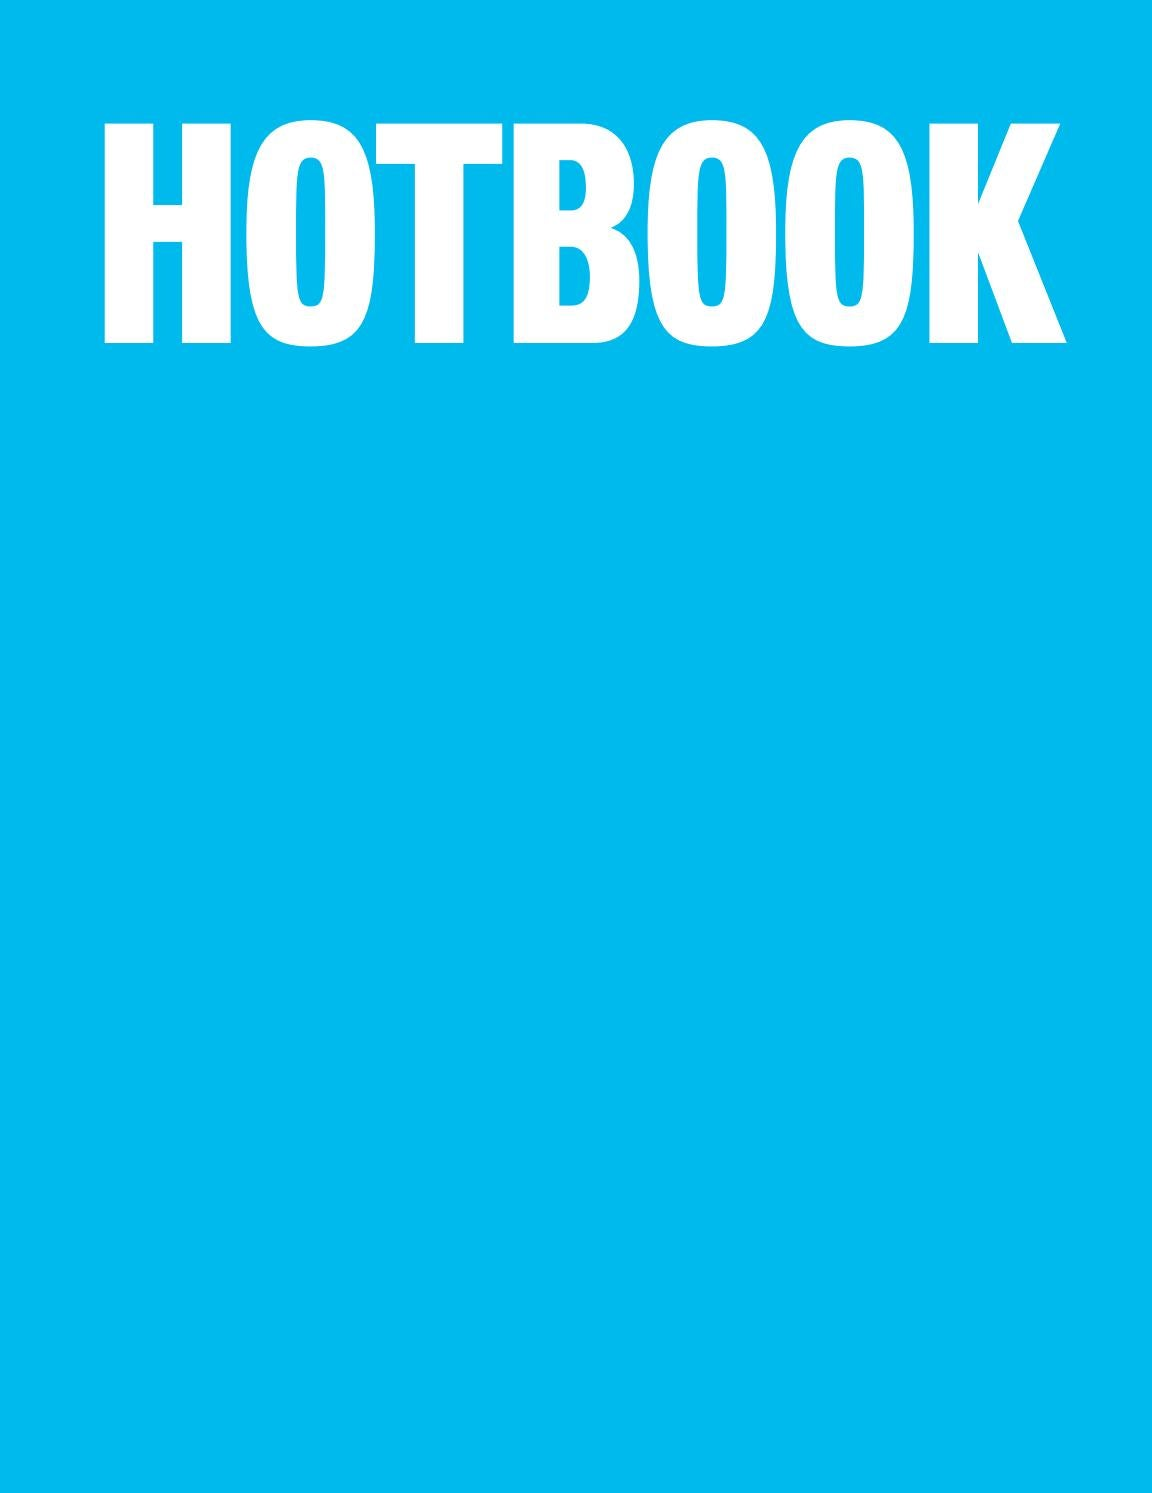 06bd62fdb44 HOTBOOK 003 by HOTBOOK - issuu